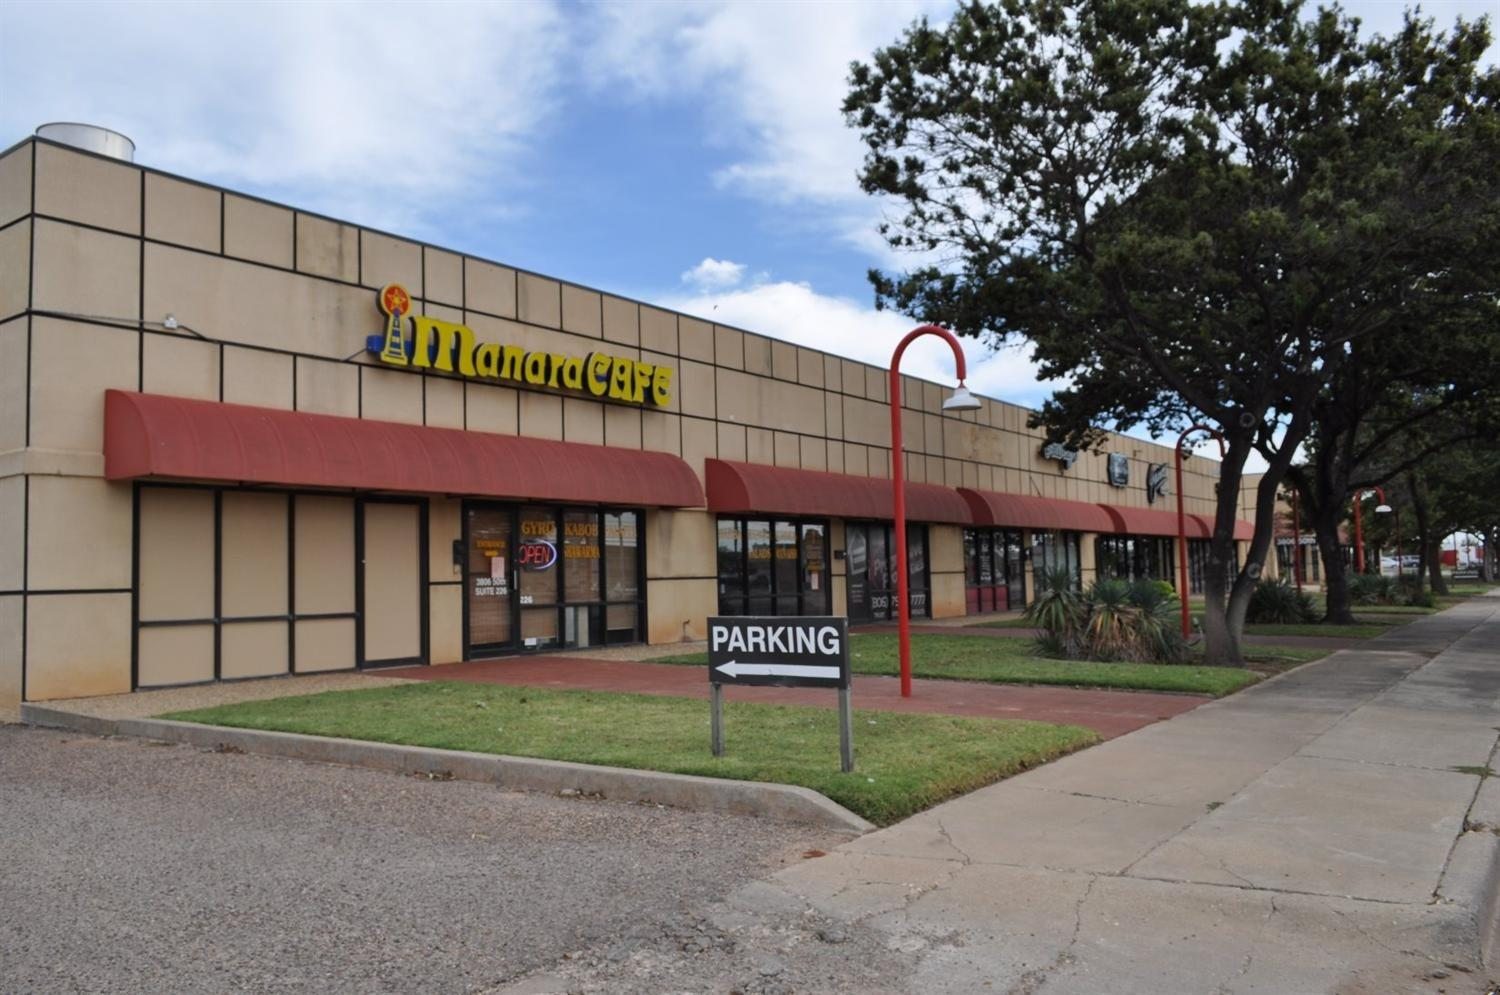 2-story commercial retail or restaurant building for sale with 2,700 sq. feet. The property includes 3 units: 1st unit was converted to a fully efficient commercial kitchen and it has a drive-thru window and a walk-in freezer. New grease trap installed in kitchen (2017). The 2nd and 3rd units are open and use for dining area. Each unit has its own bathroom with a total of 3. The 2nd floor is also open and could be use for additional dining area with a huge room to the side that could be use as an office. This is a great opportunity for restaurant investors or somebody with culinary experience that is interested in getting into the restaurant business.